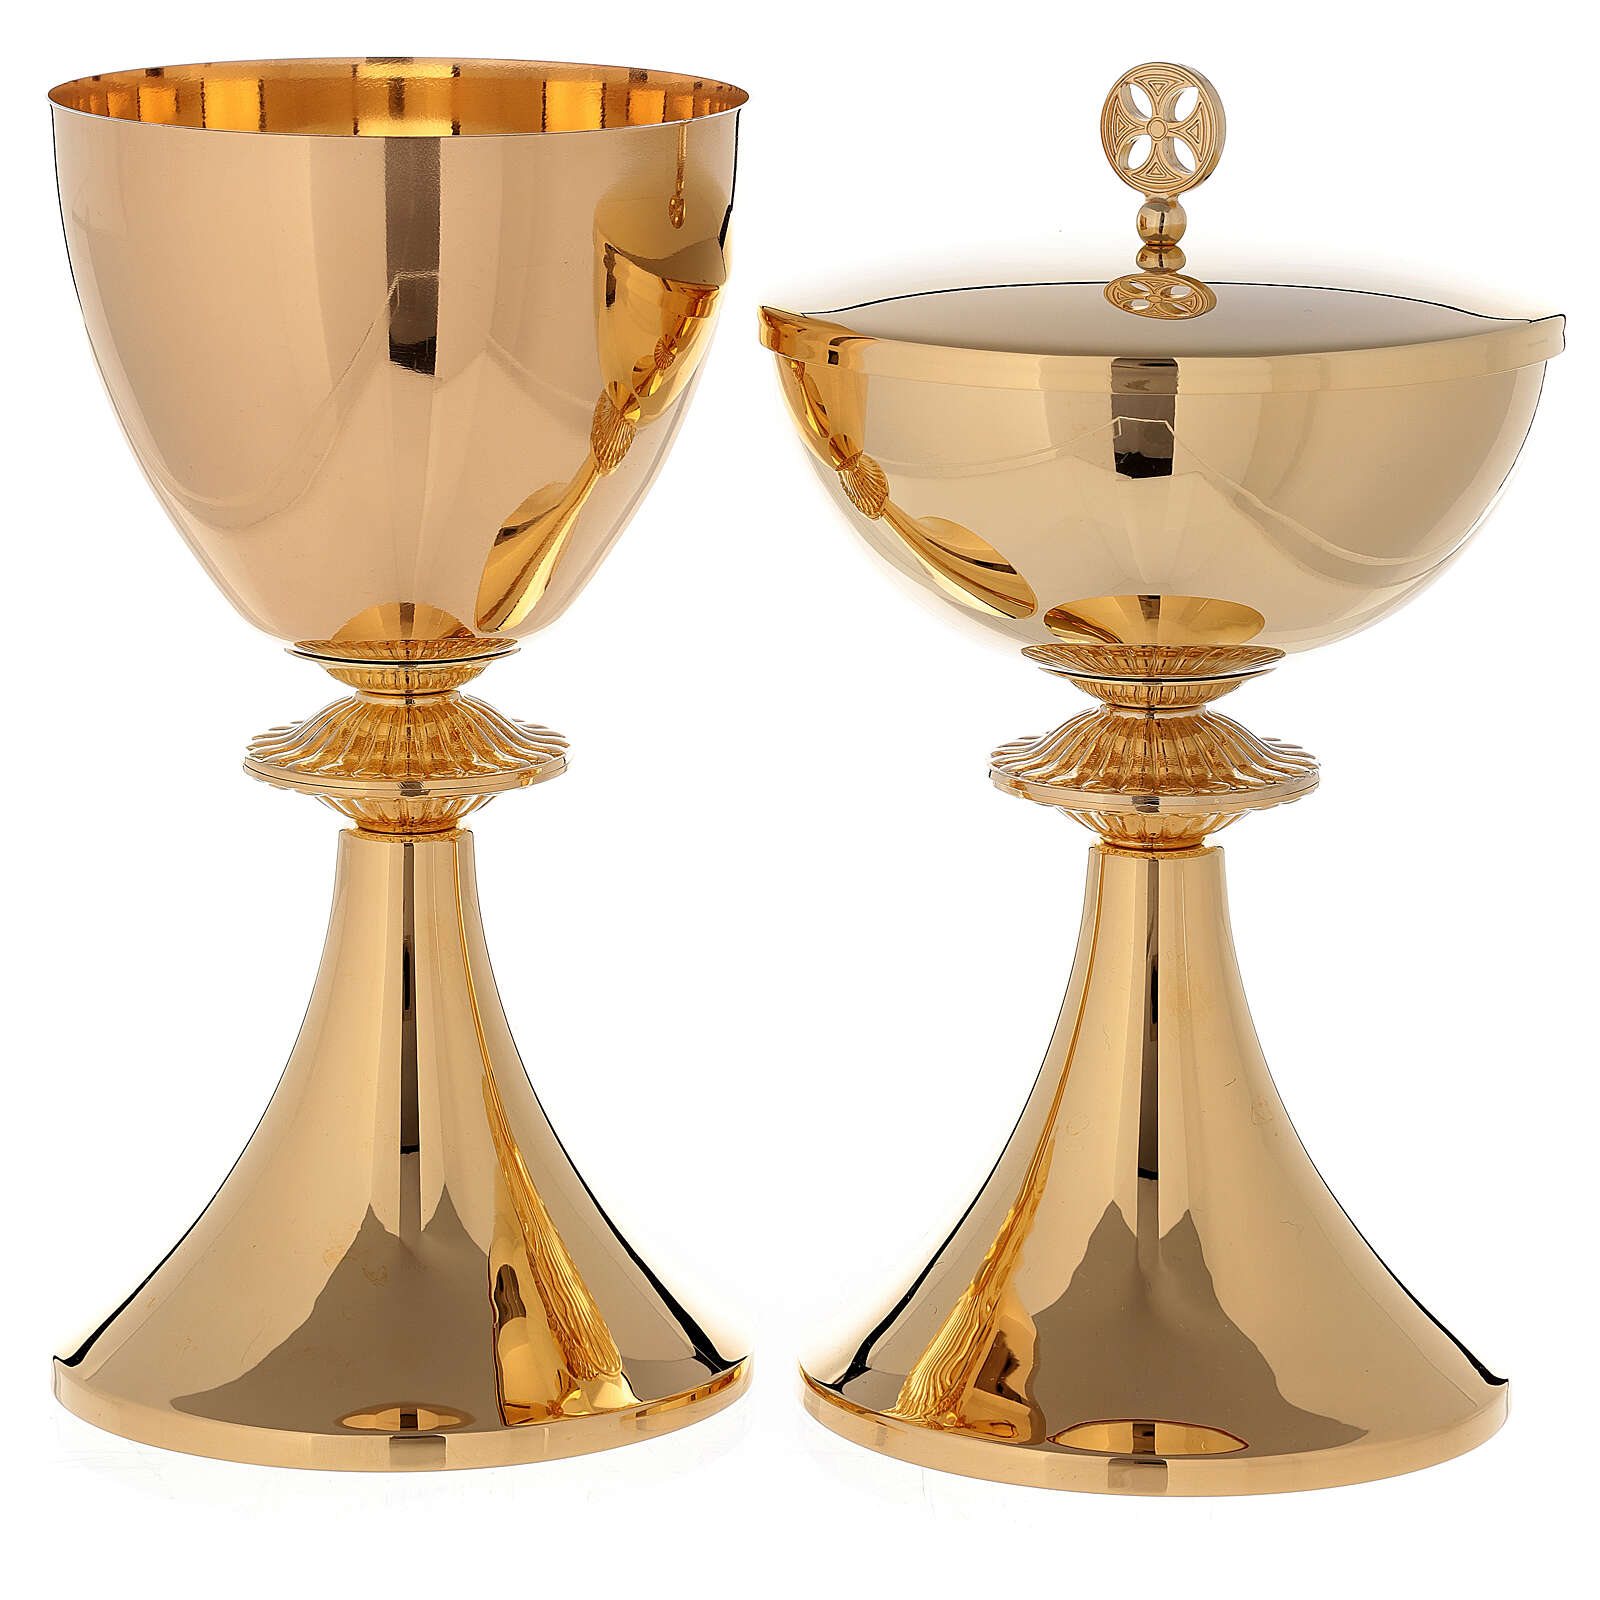 Chalice and Ciborium in 24-karat gold plated brass with cast node 4